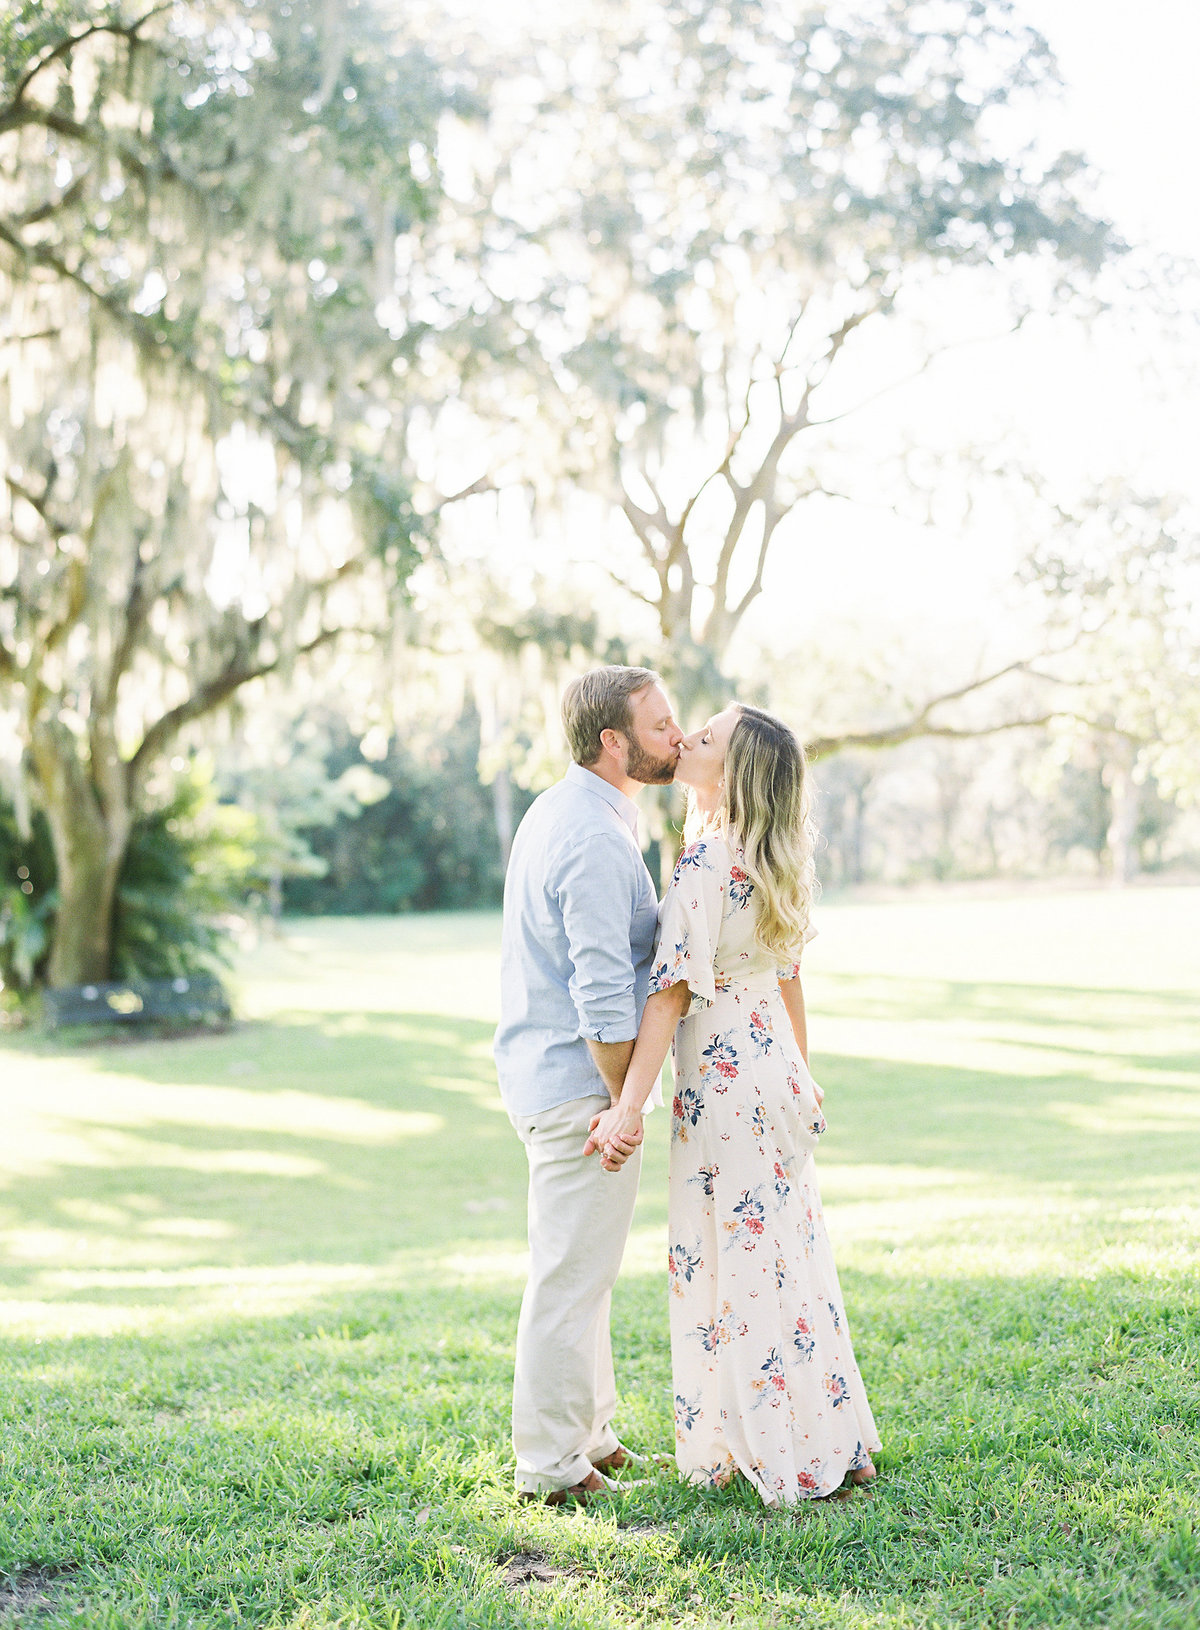 Bok_Tower_Garden_Film_Fine_Art_Engagement_Session-13